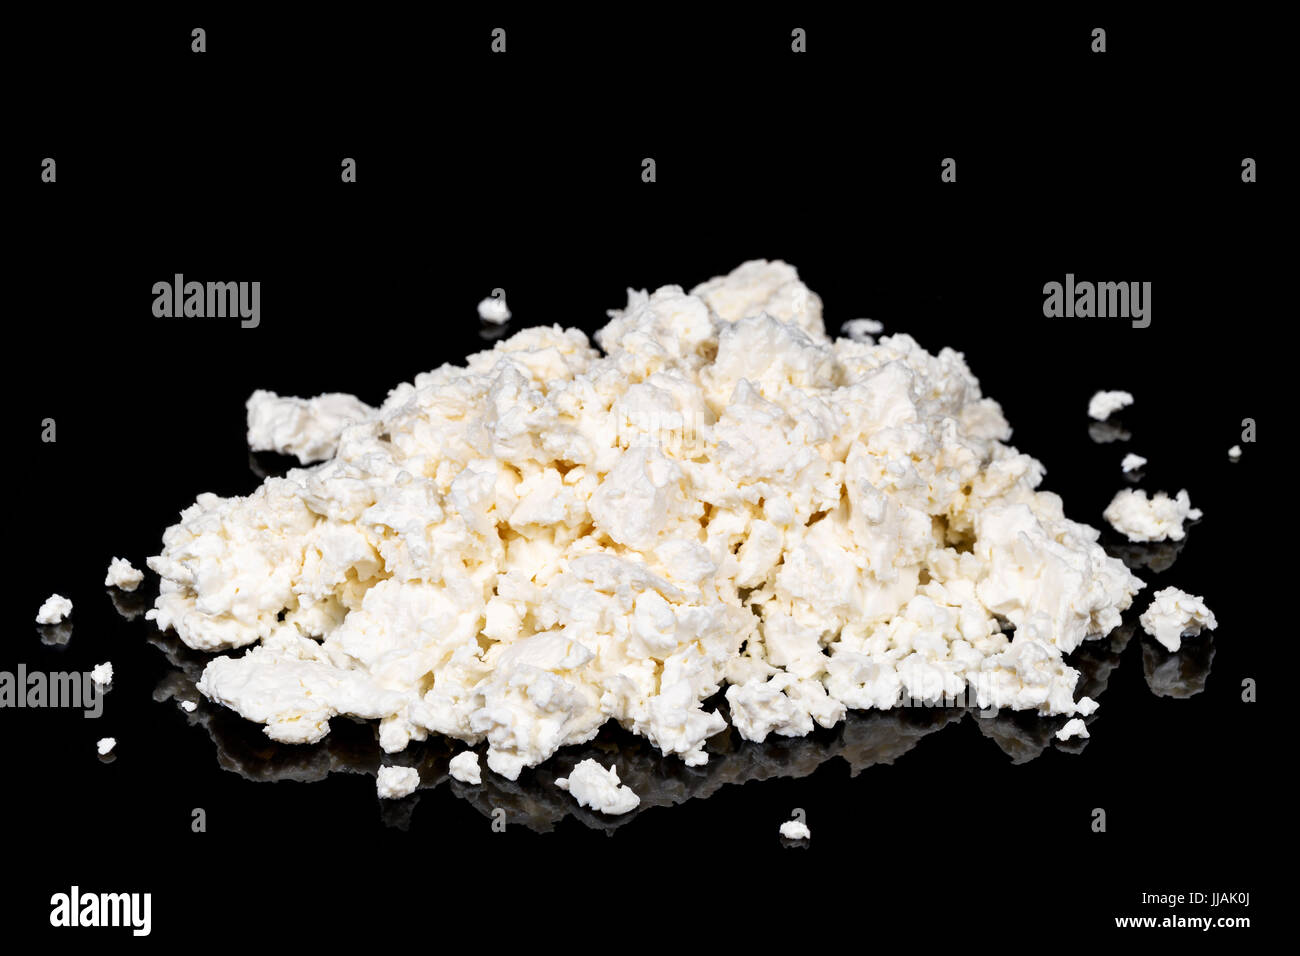 Pile of cottage cheese on black - Stock Image